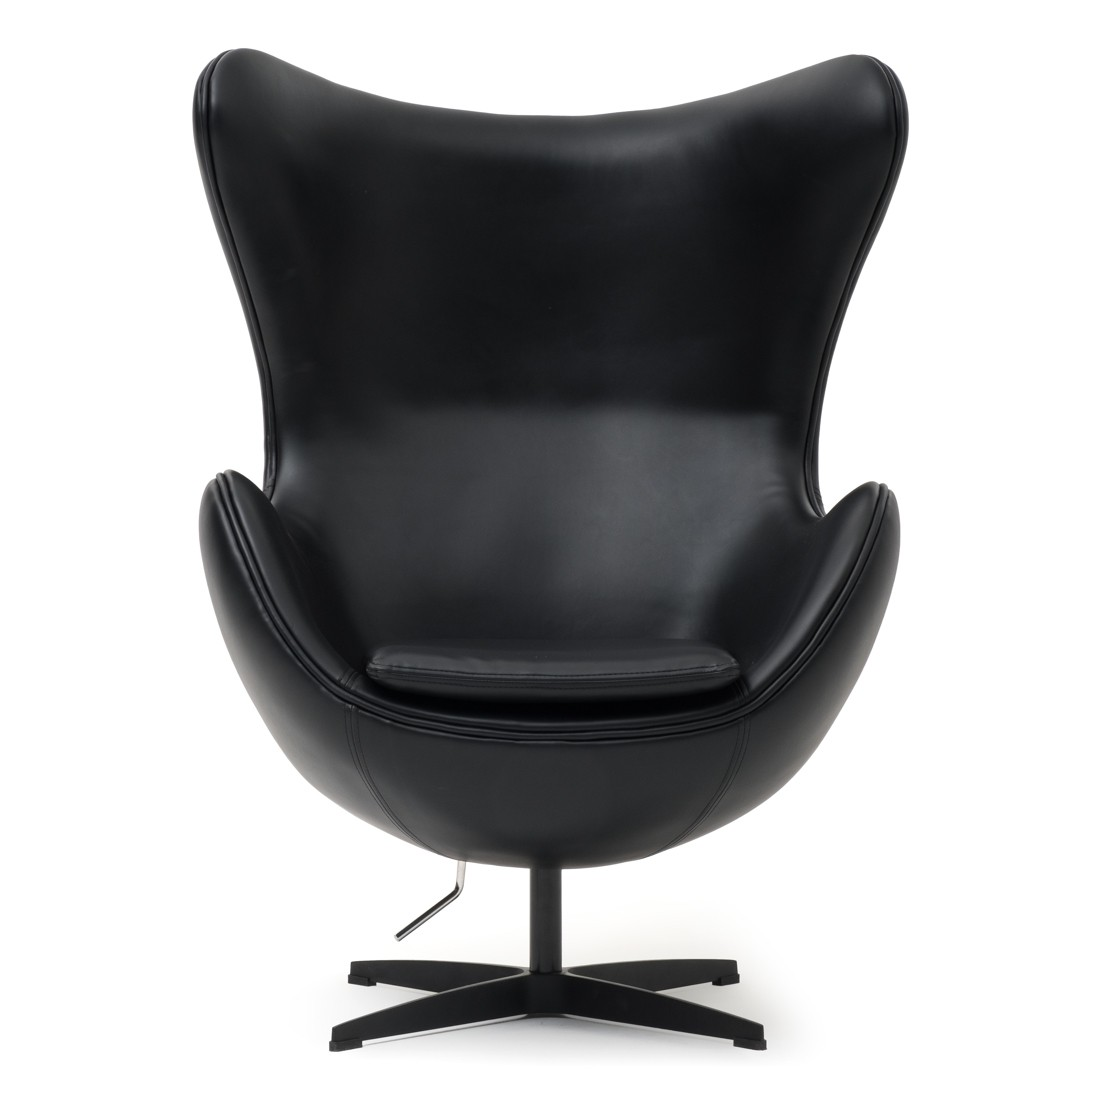 Black Egg Chair from Mobilia